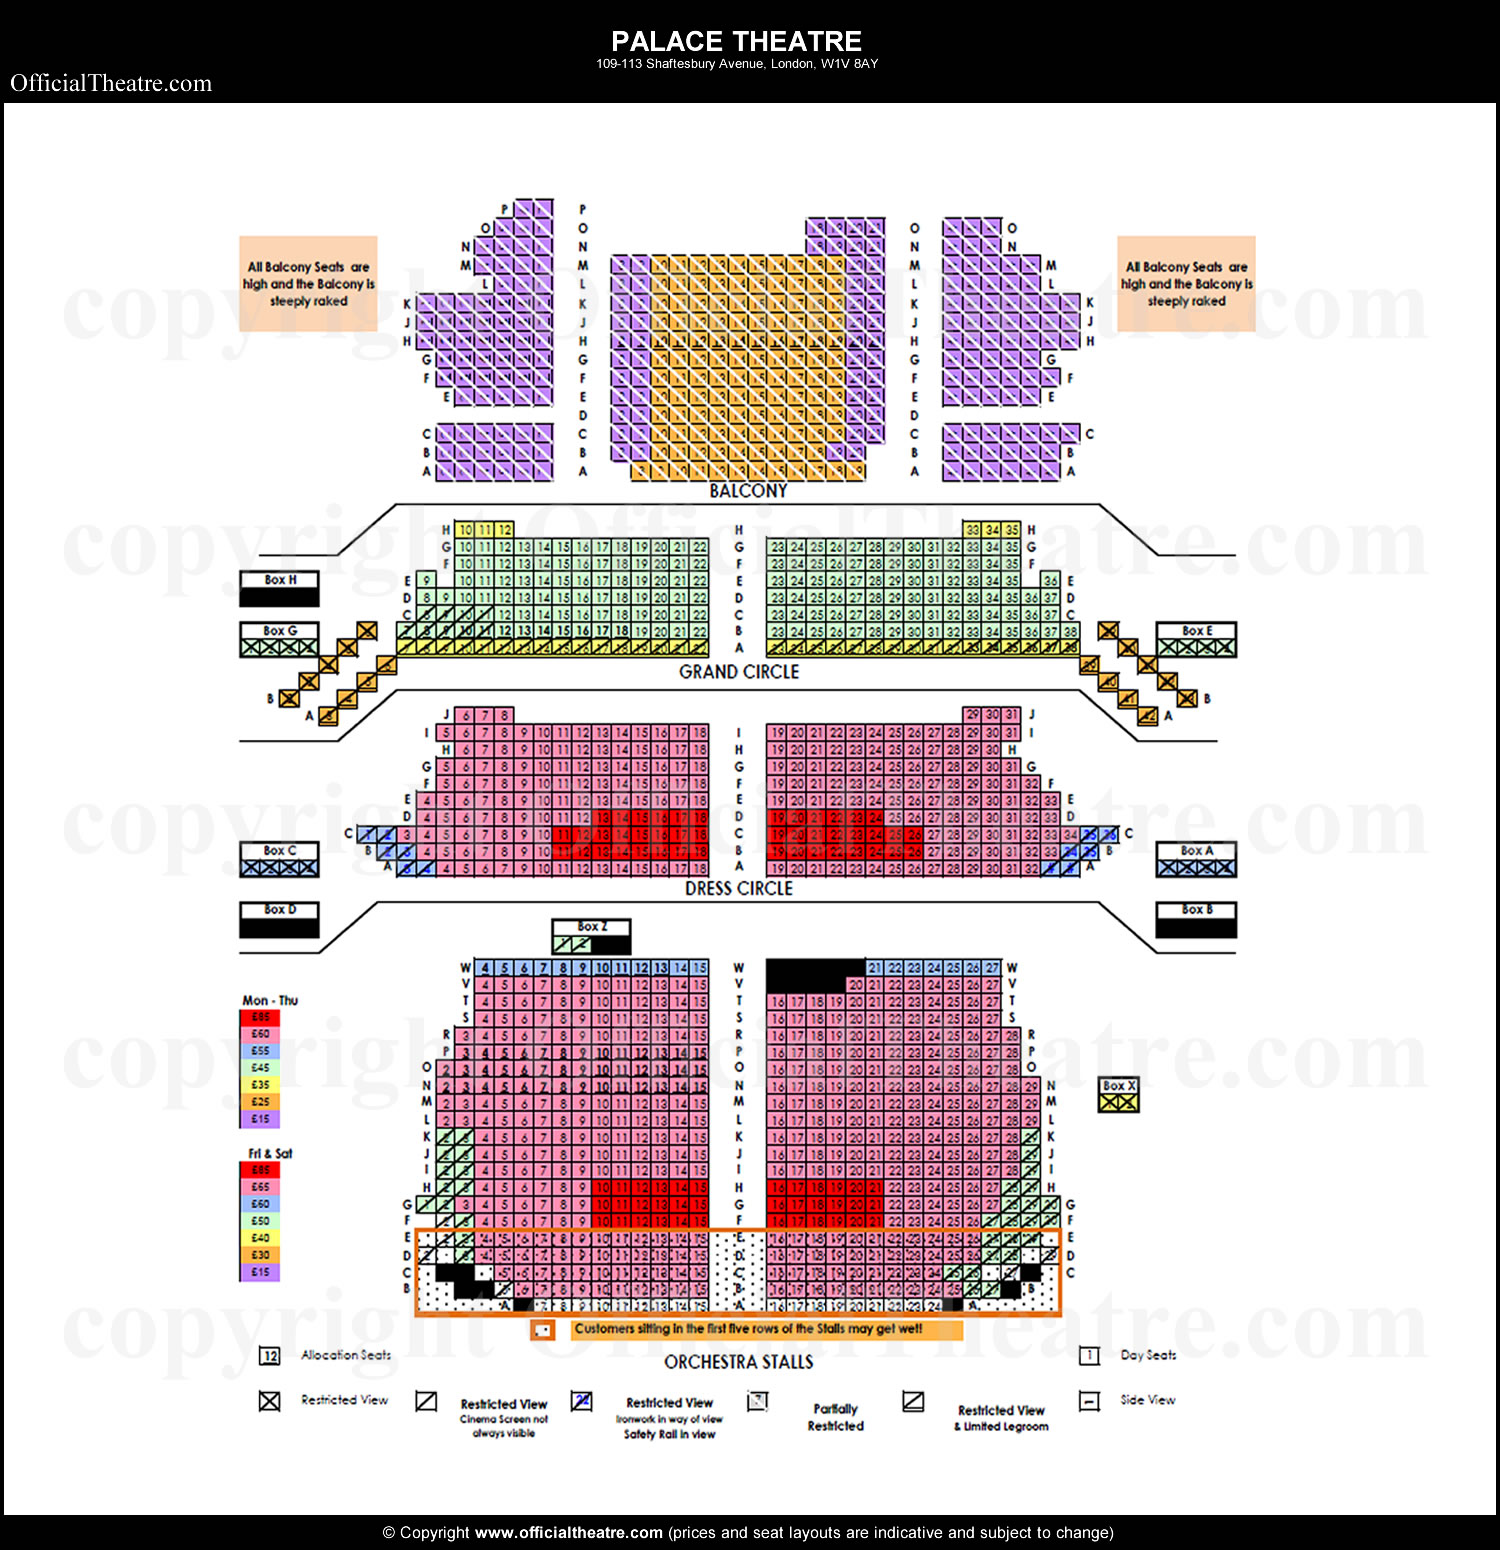 Les Mis Seating Chart Sydney State Theatre Seating Chart Sydney Tickets Dream Lover Australia